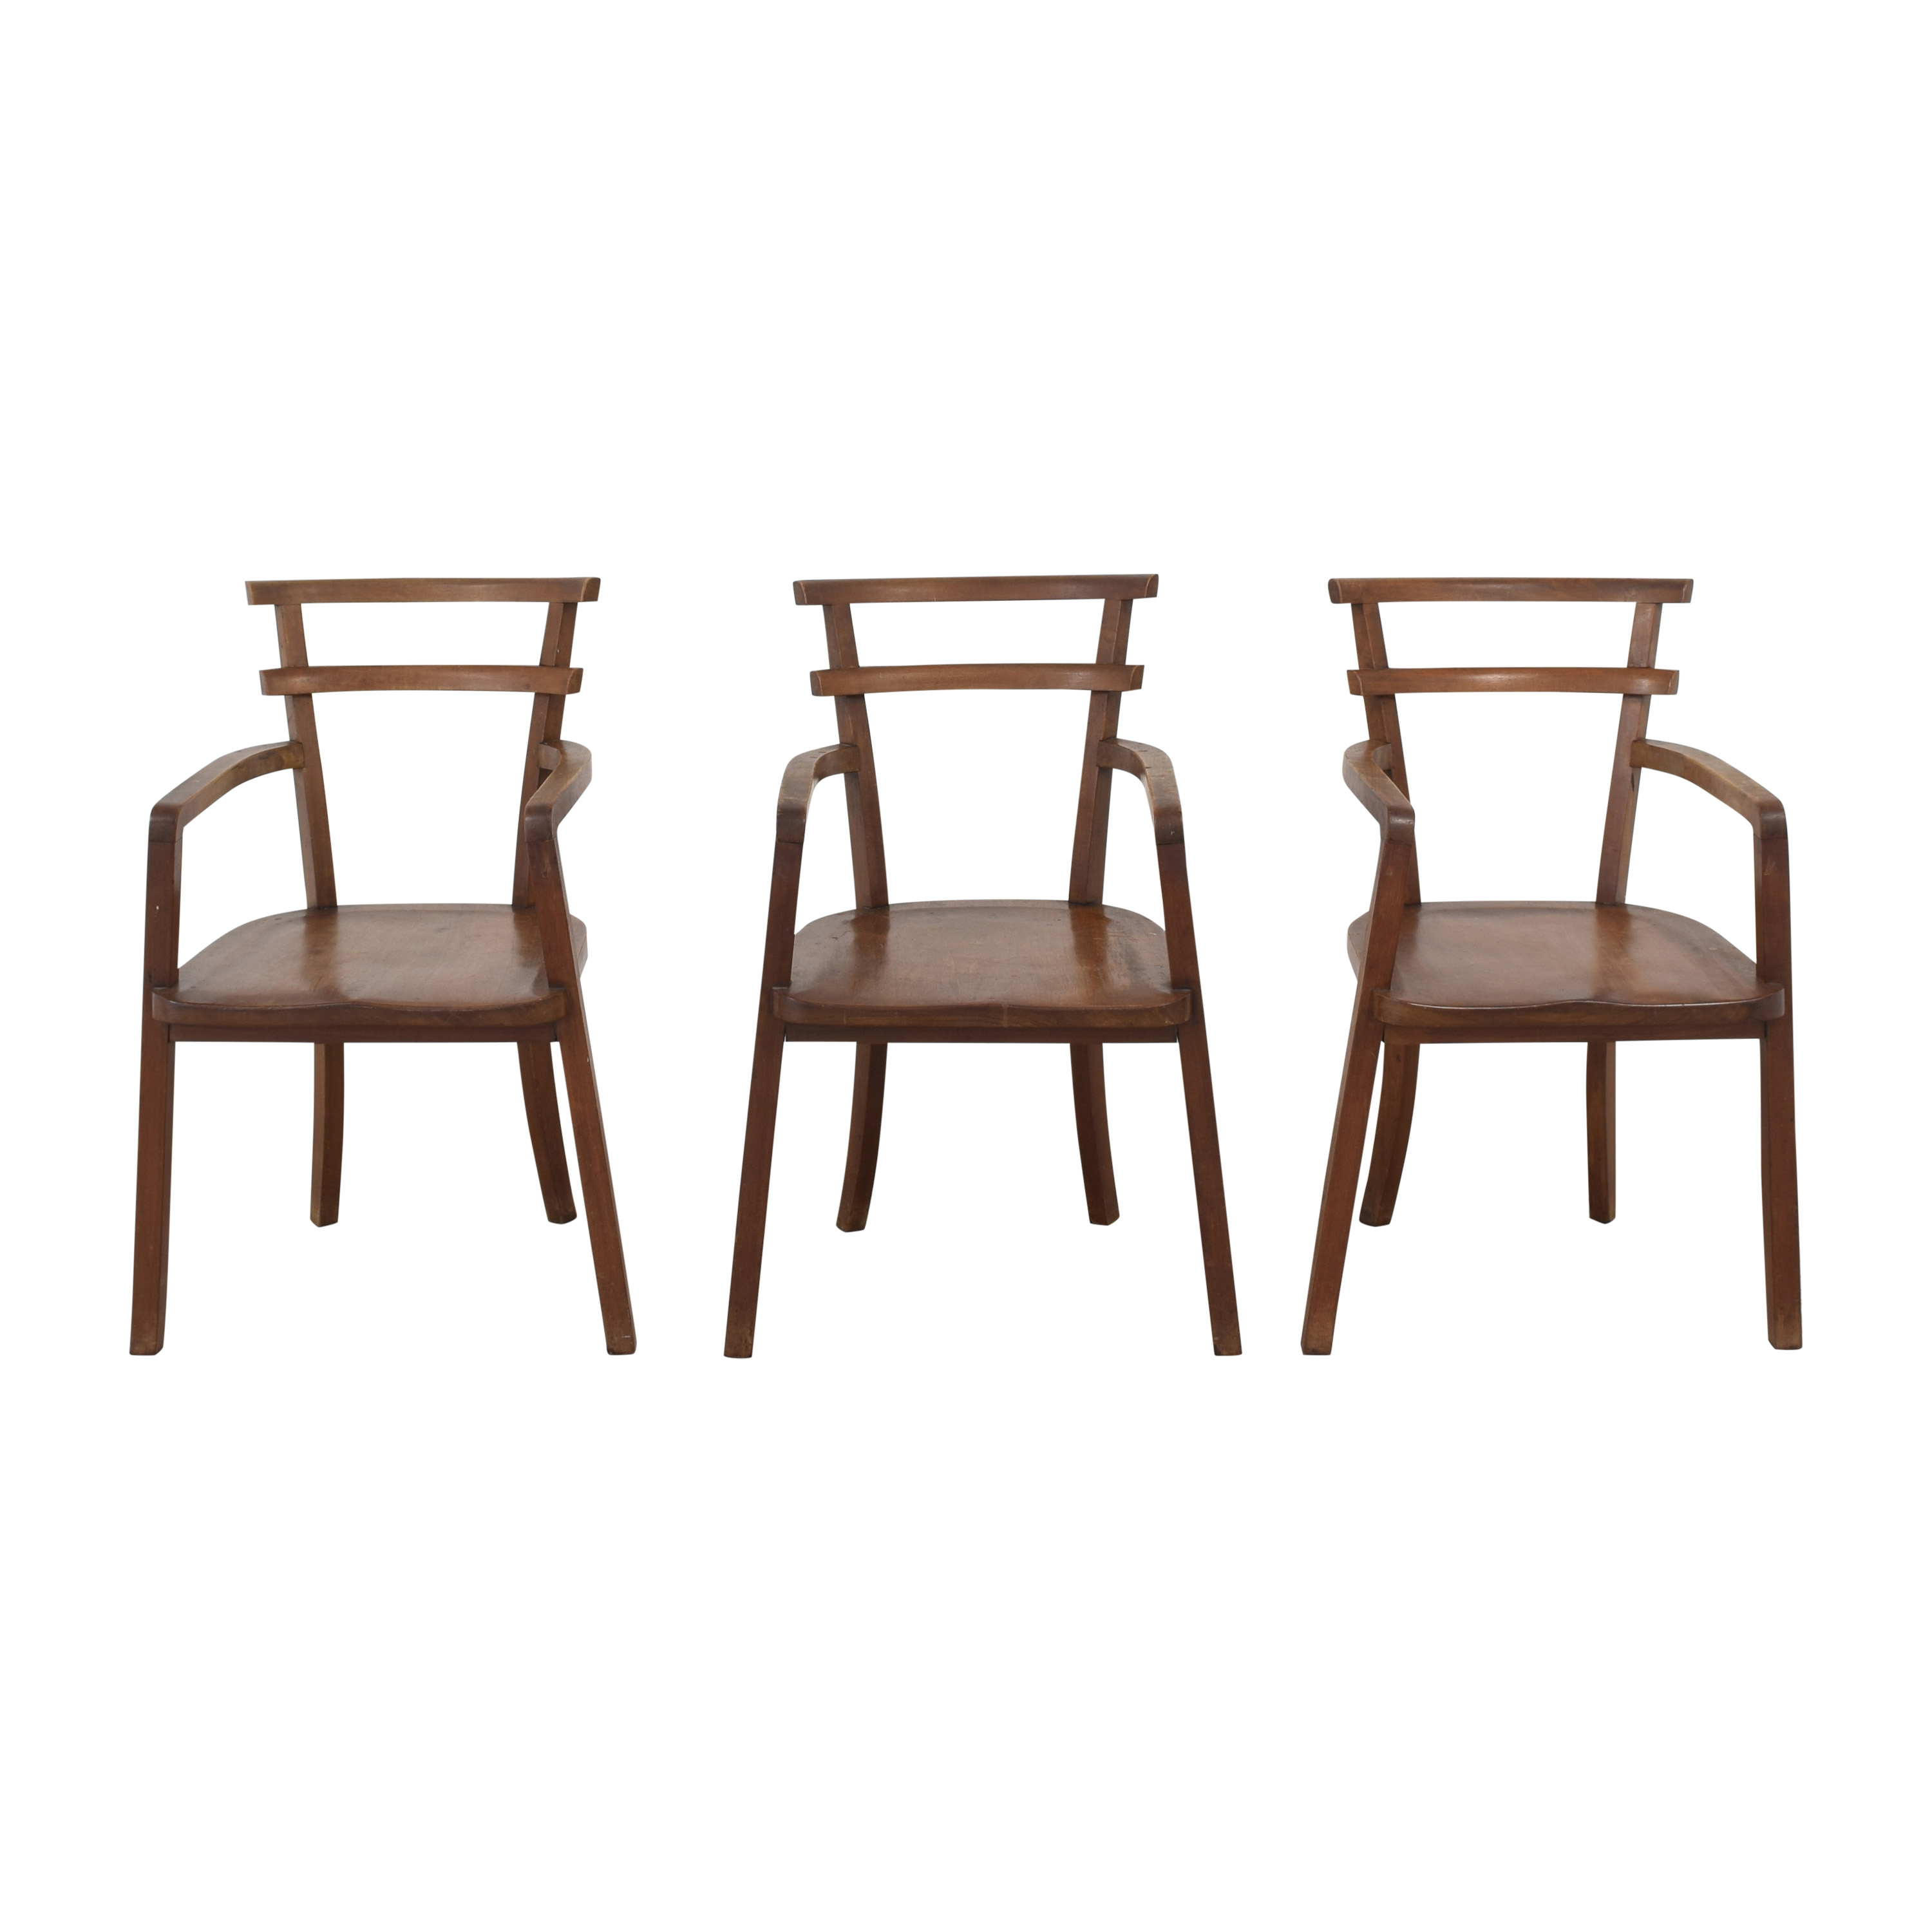 shop  Vintage Wooden Dining Chairs online